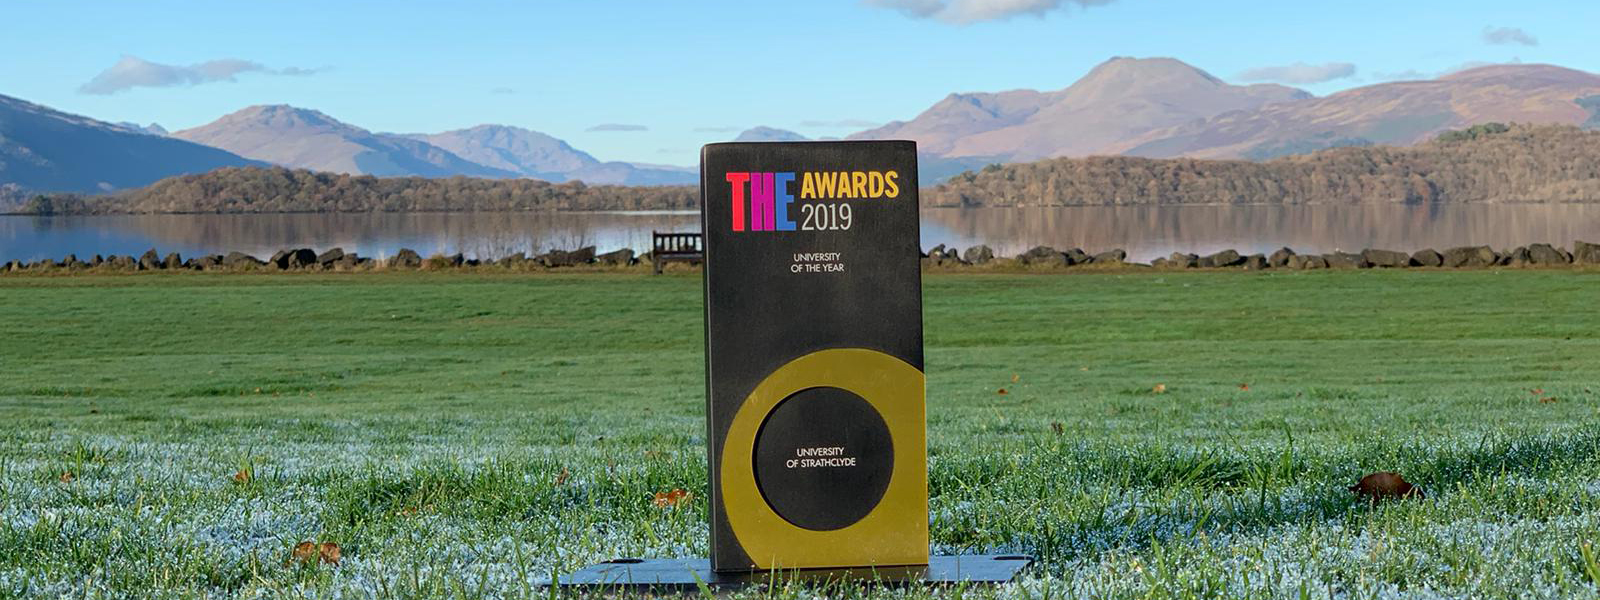 Times Higher Award in Scotland